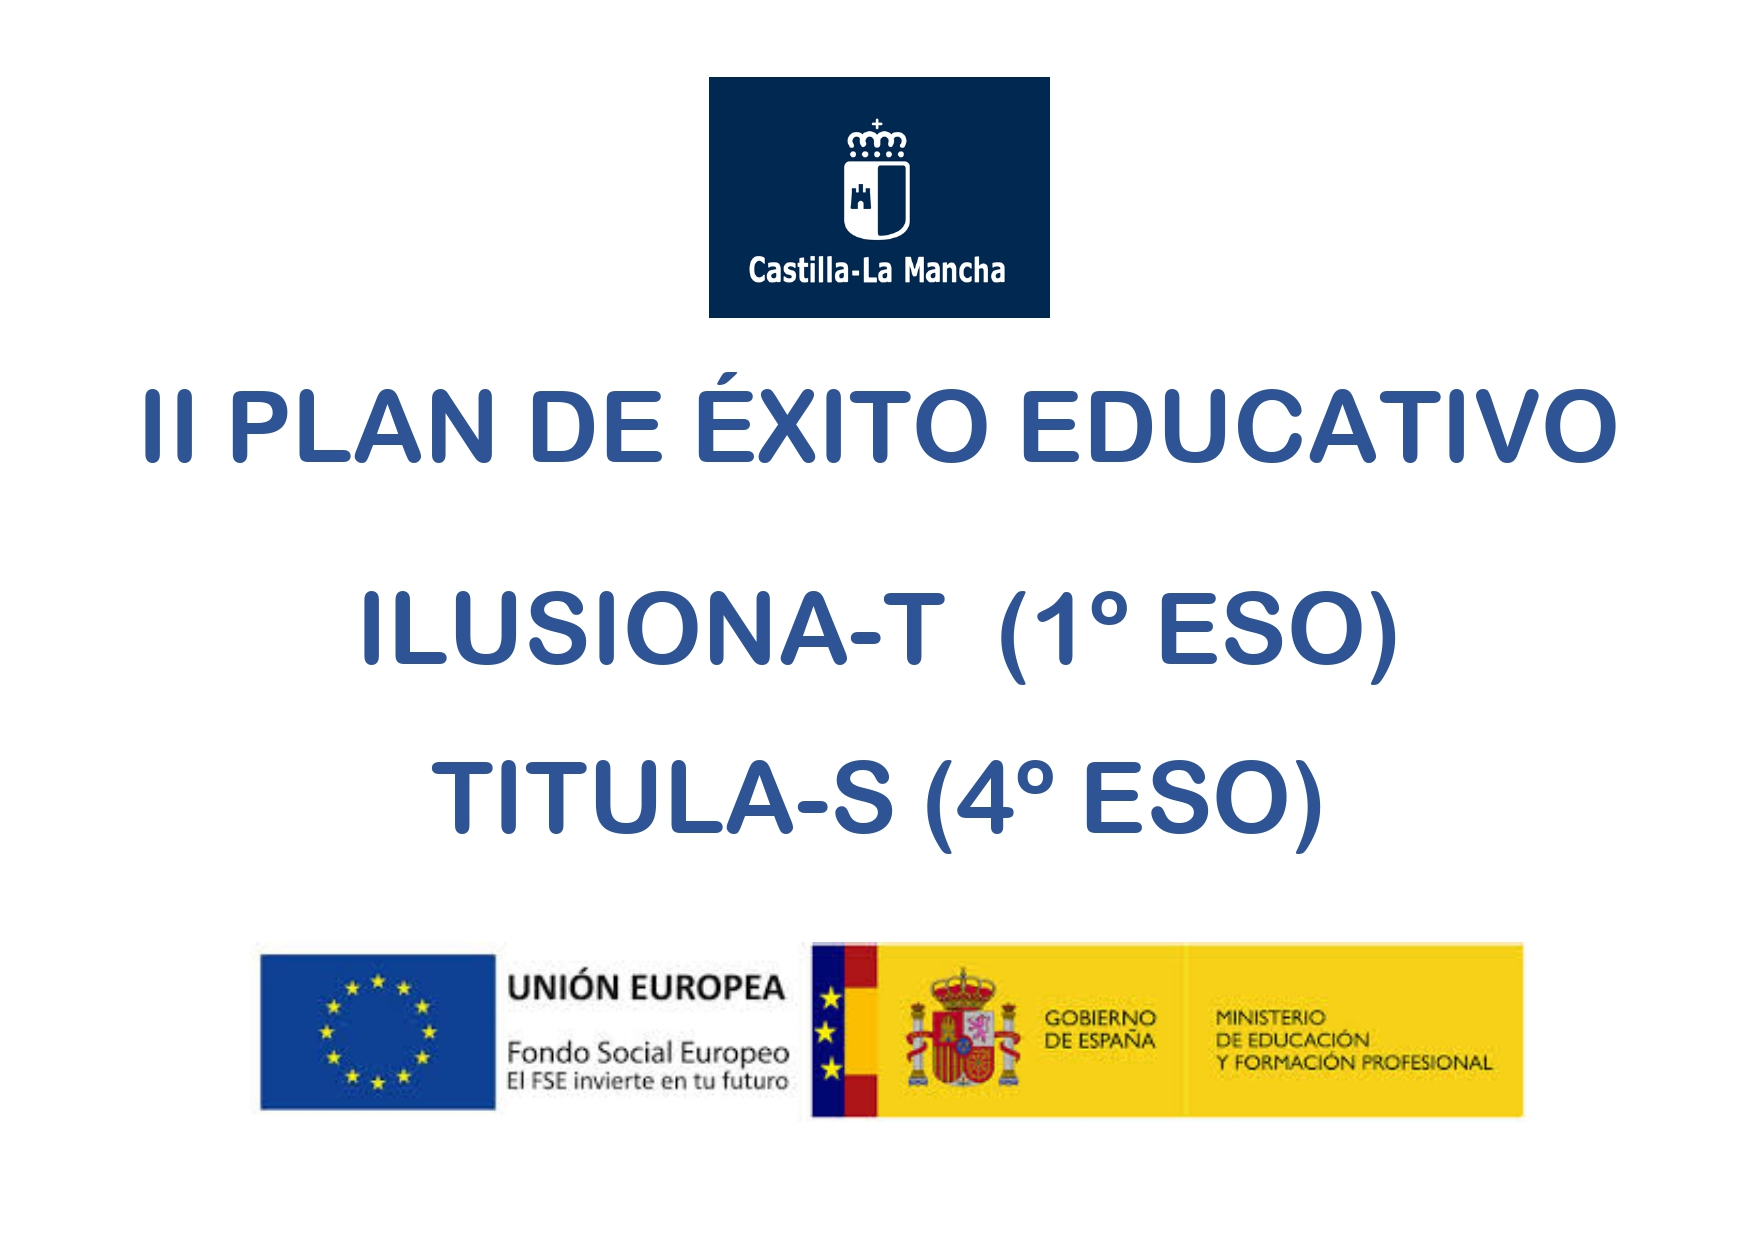 II PLAN DE EXITO EDUCATIVO WEB